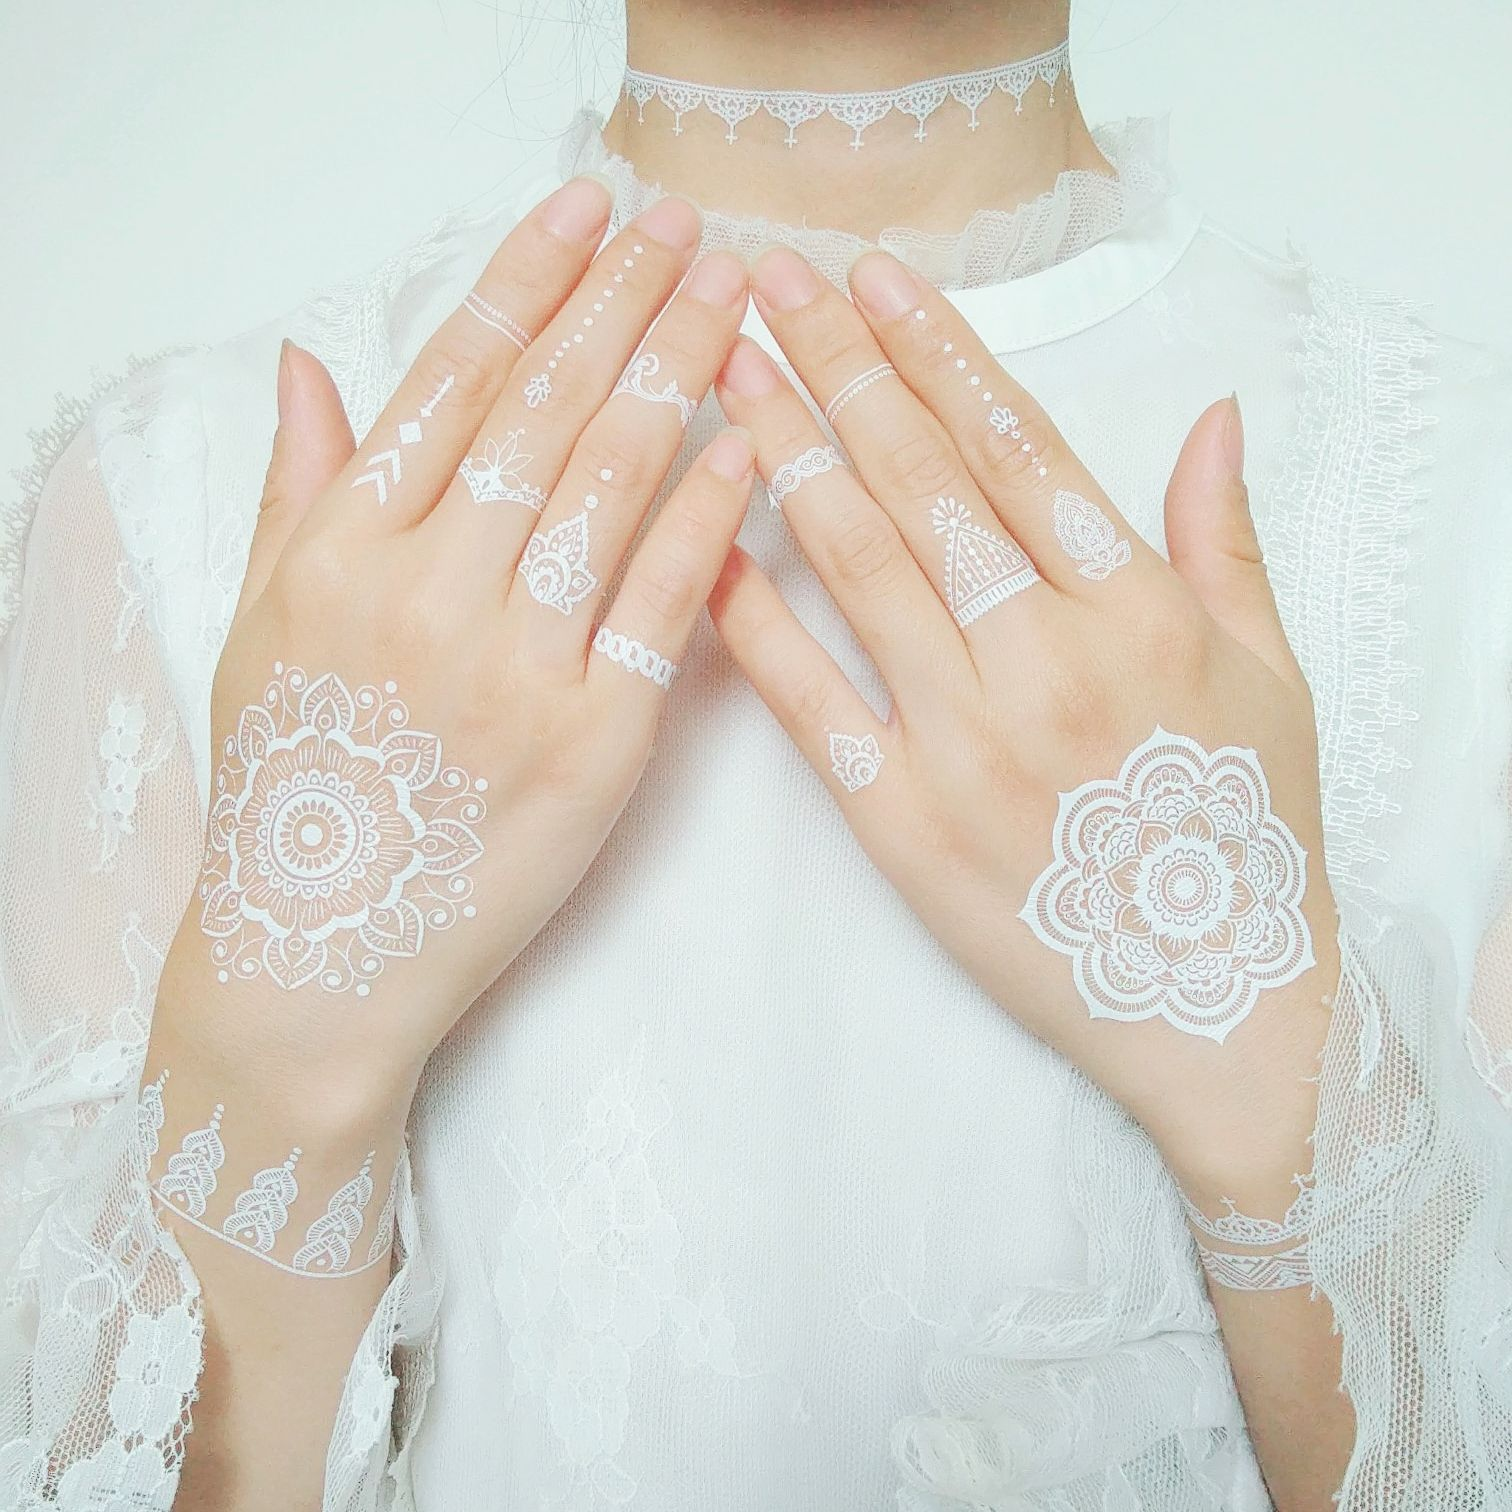 White Henna Lace Body Temporary Tattoo